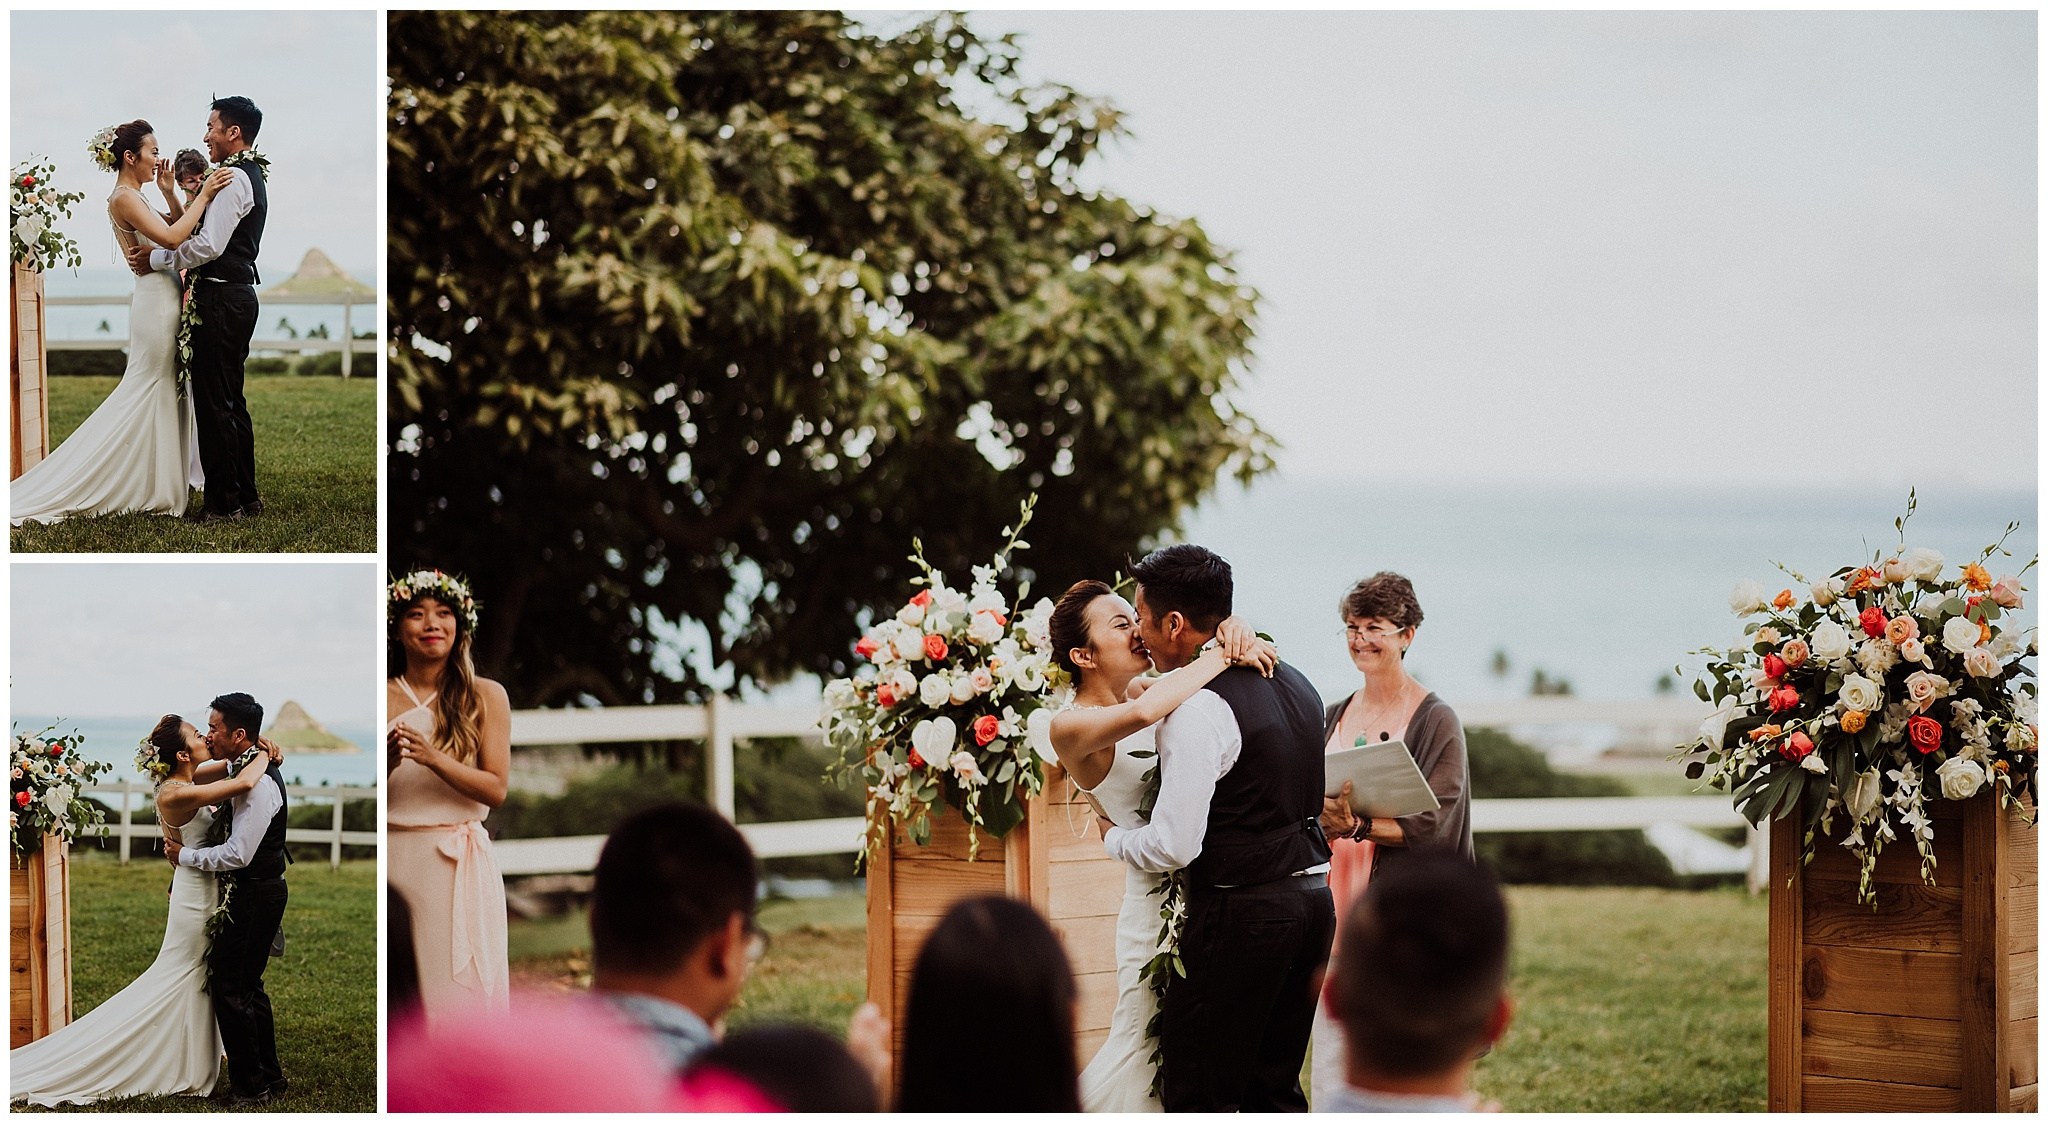 kualoa_ranch_wedding2.jpg